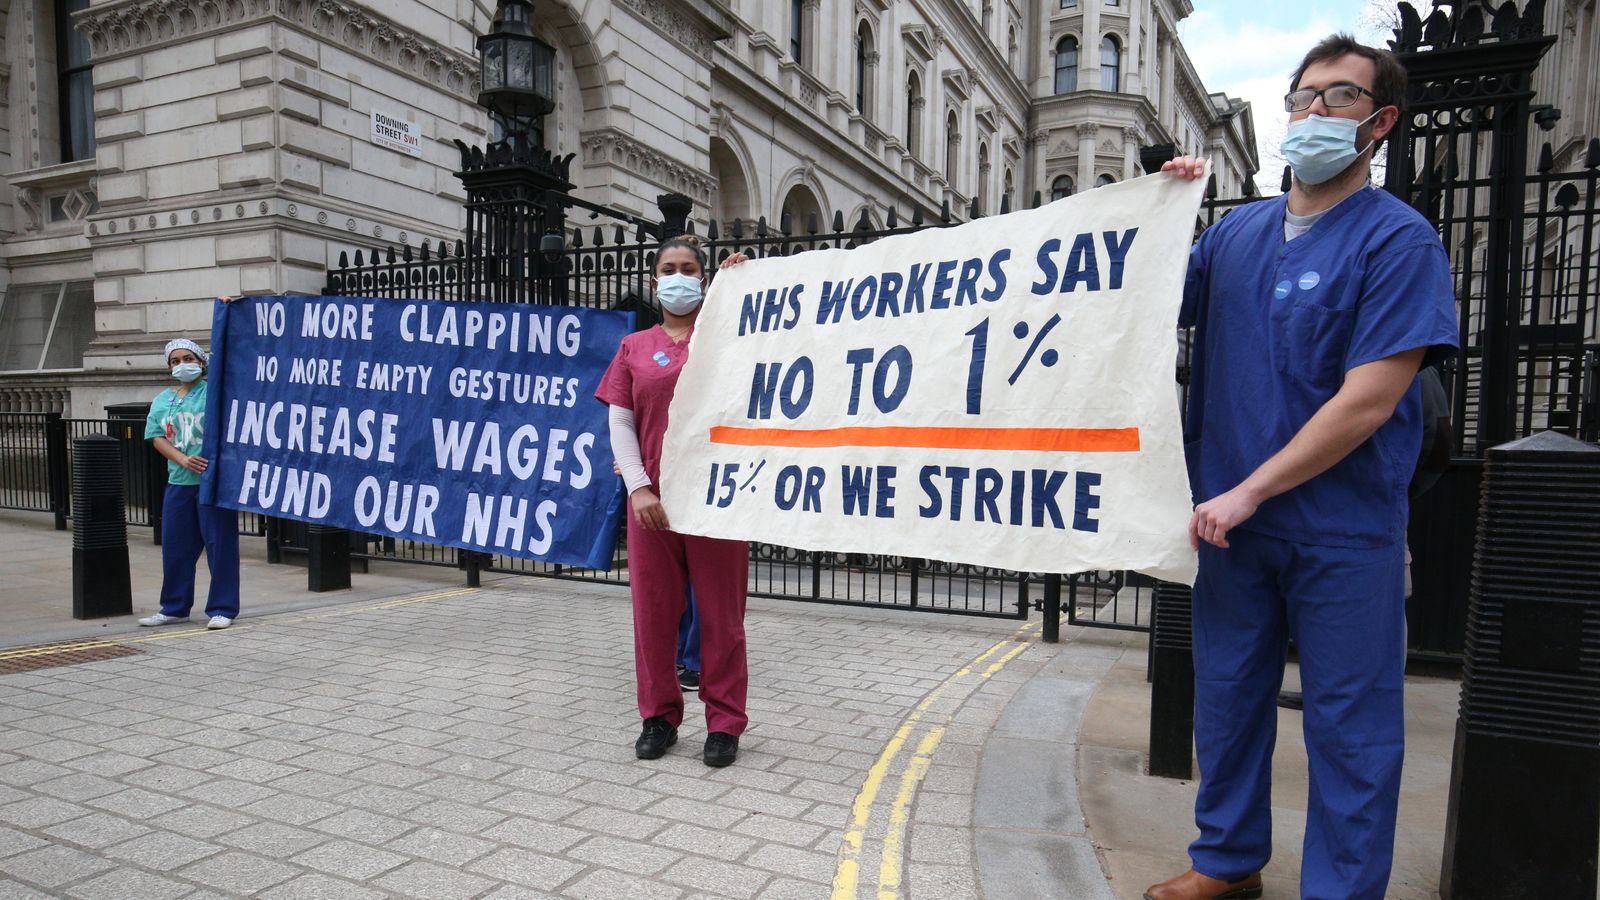 NHS staff in England get pay rise of 3% after their contribution during 'unprecedented year'